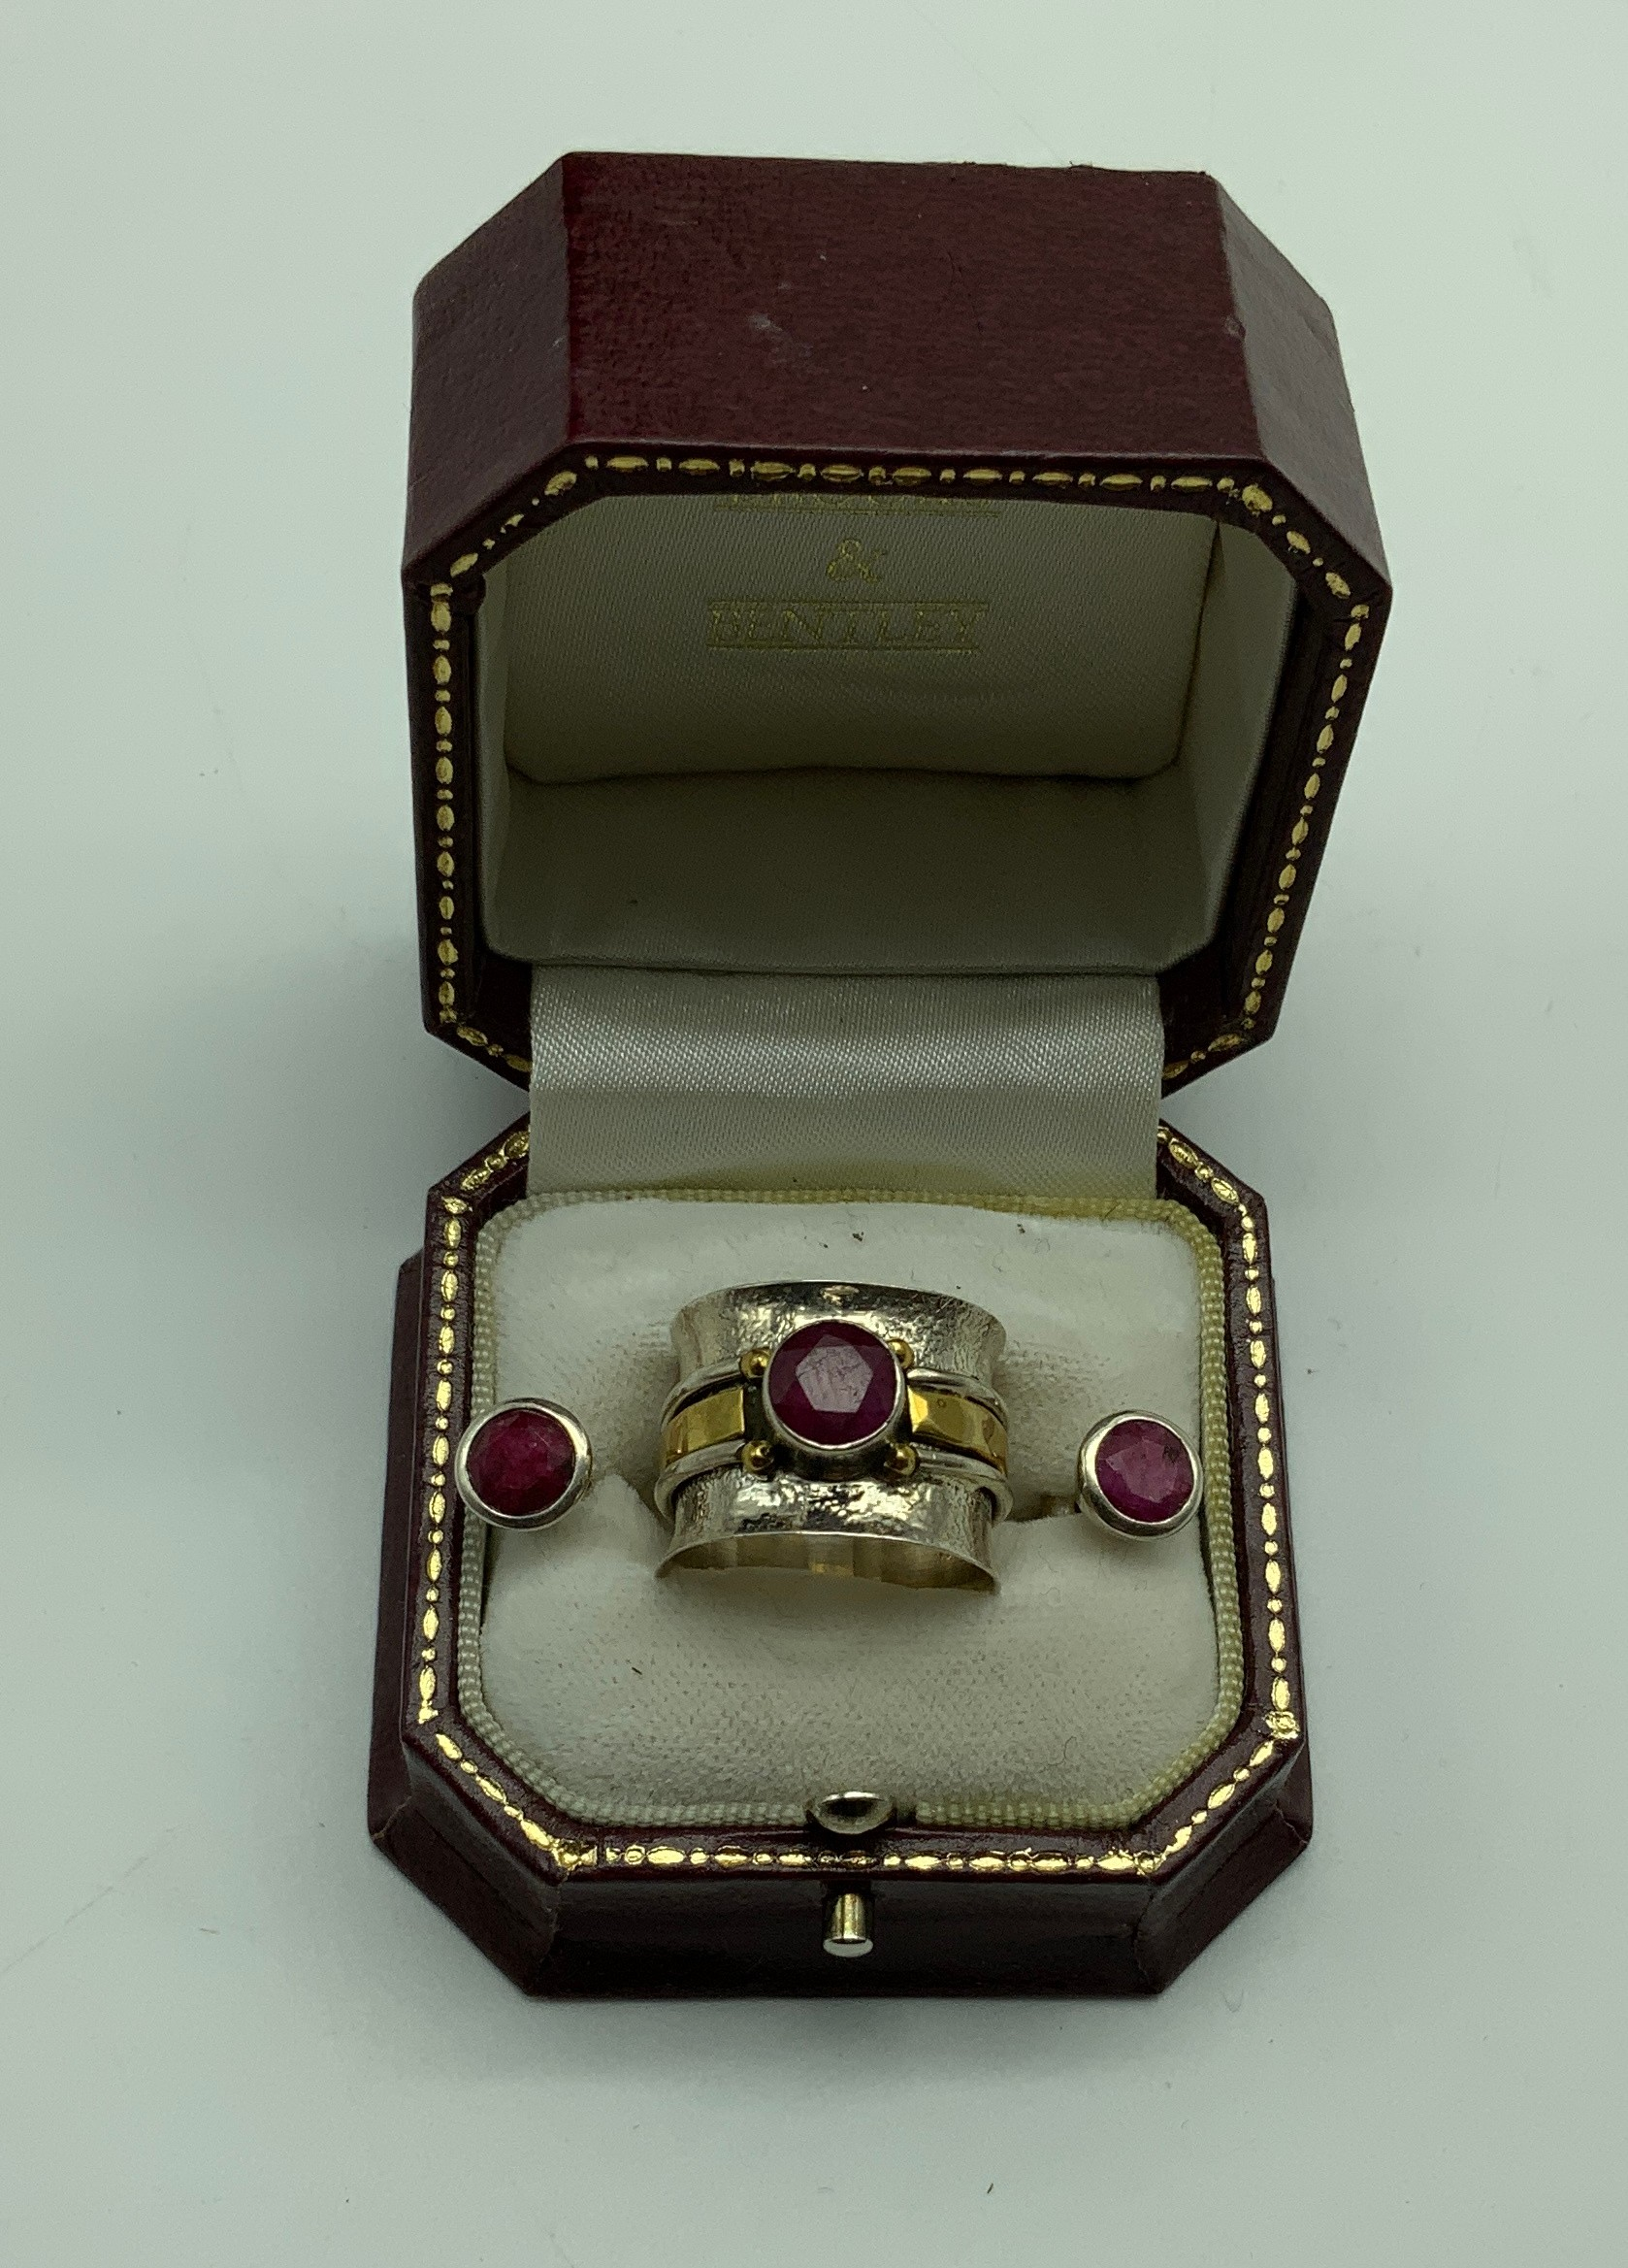 Sterling silver ring hallmarked 925 with Raw Ruby gemstone in the center approx 1ct